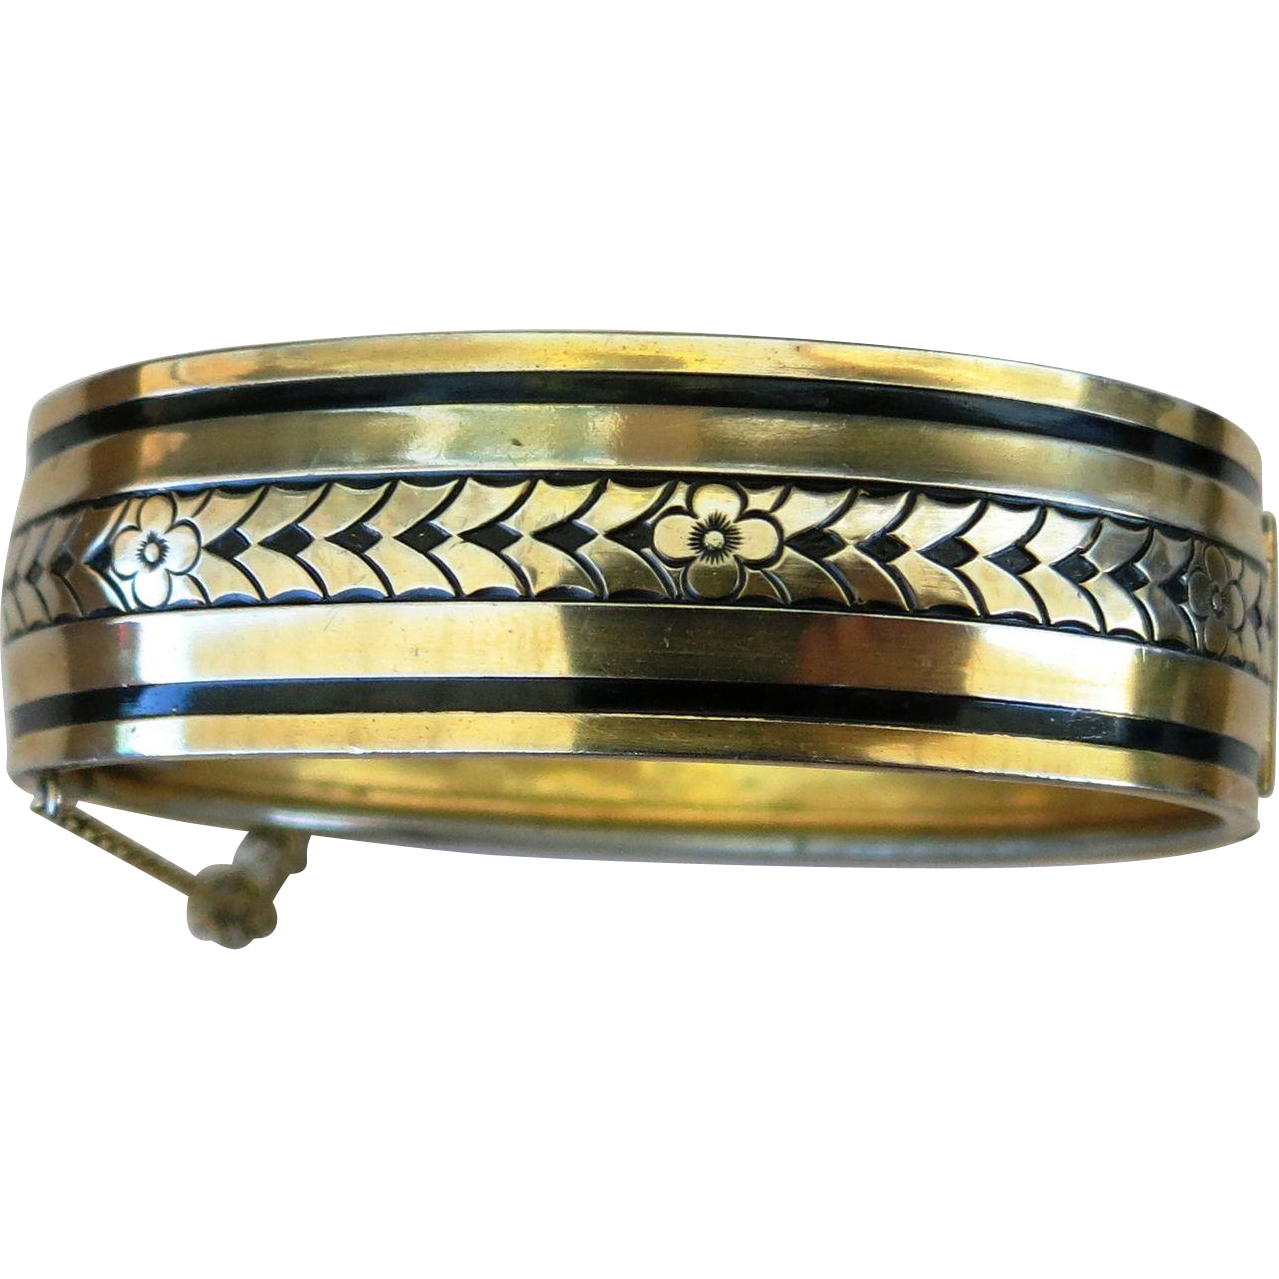 VINTAGE Gold Tone Metal Bangle Bracelet with Black Enamel